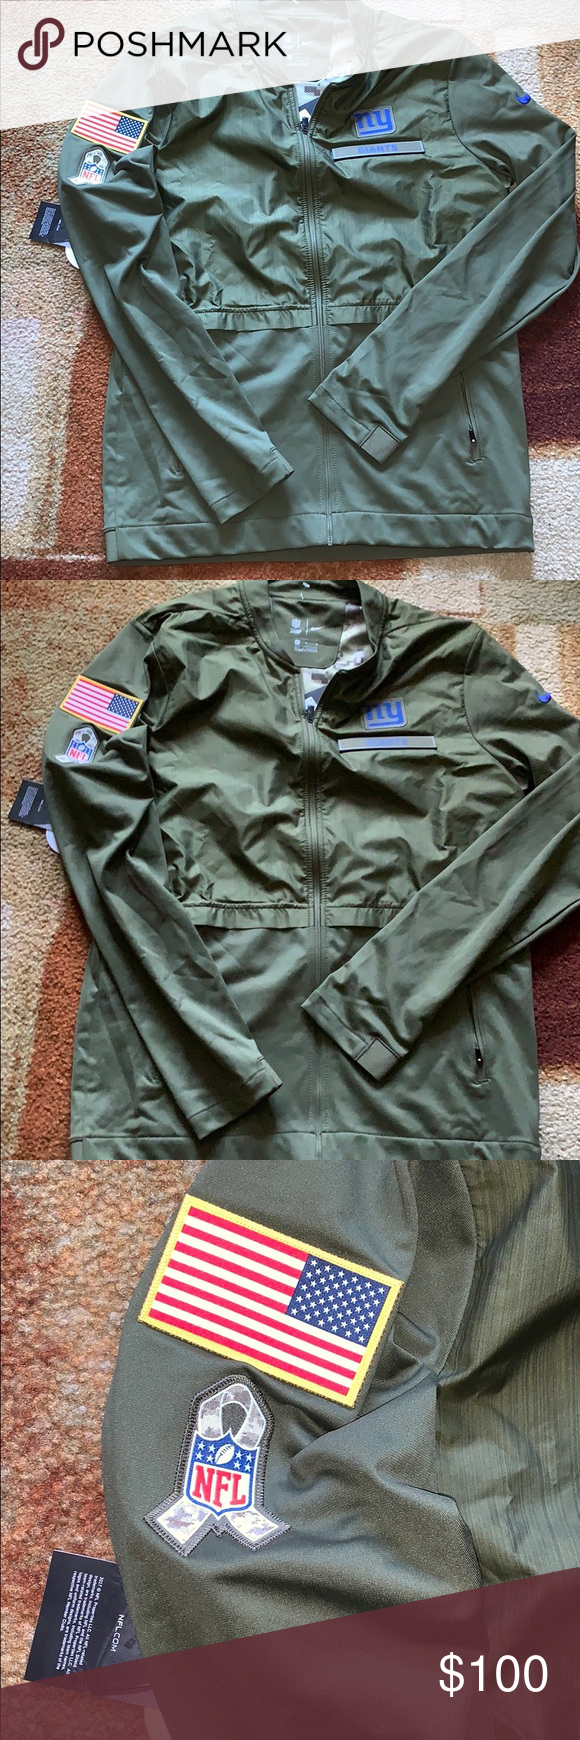 New Nike Salute to Service NY Giants Jacket New Nike Salute to Service NY Giants Jacket Size: Medium  Color: Green Blue Red White Yellow Blue L: 29 inches  P2P: 22 inches  Brand New Nike Jackets & Coats #salutetoservice New Nike Salute to Service NY Giants Jacket New Nike Salute to Service NY Giants Jacket Size: Medium  Color: Green Blue Red White Yellow Blue L: 29 inches  P2P: 22 inches  Brand New Nike Jackets & Coats #salutetoservice New Nike Salute to Service NY Giants Jacket New Nike Salute #salutetoservice